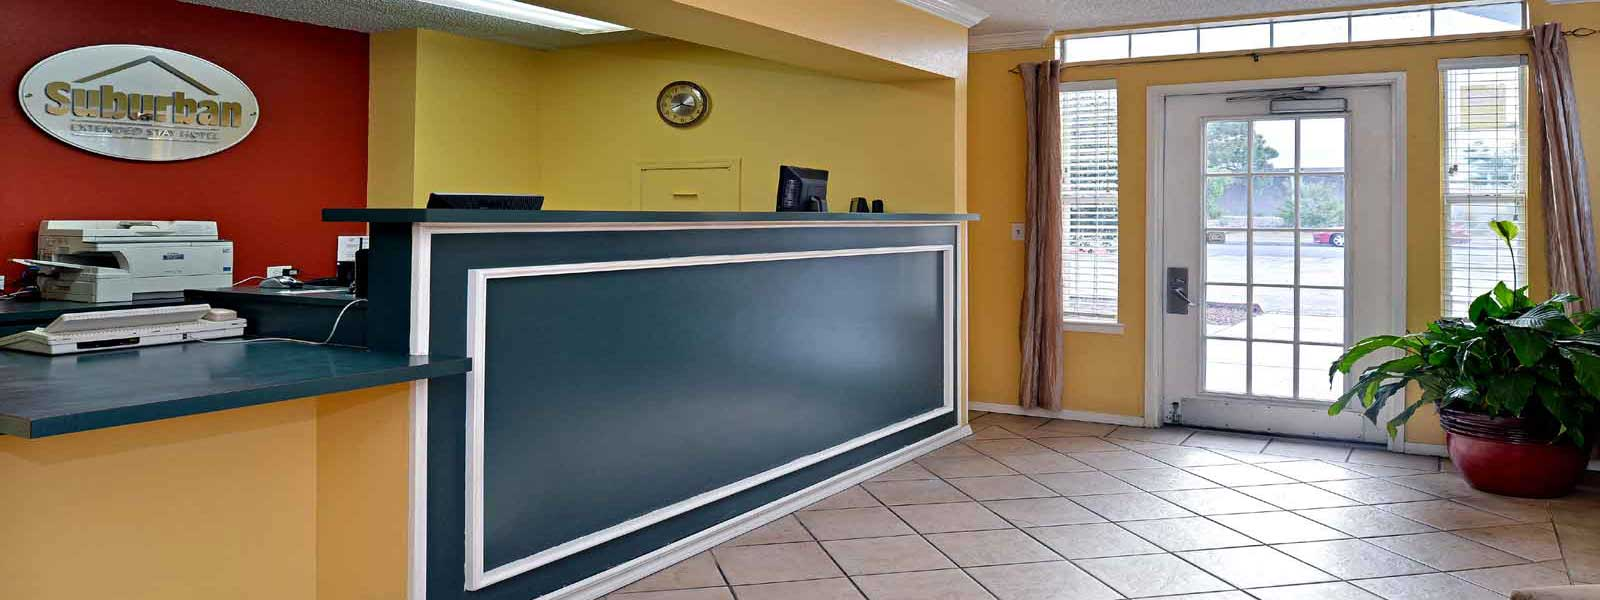 Lobby Discount Budget Cheap Affordable Hotels Motels Suburban Extended Stay